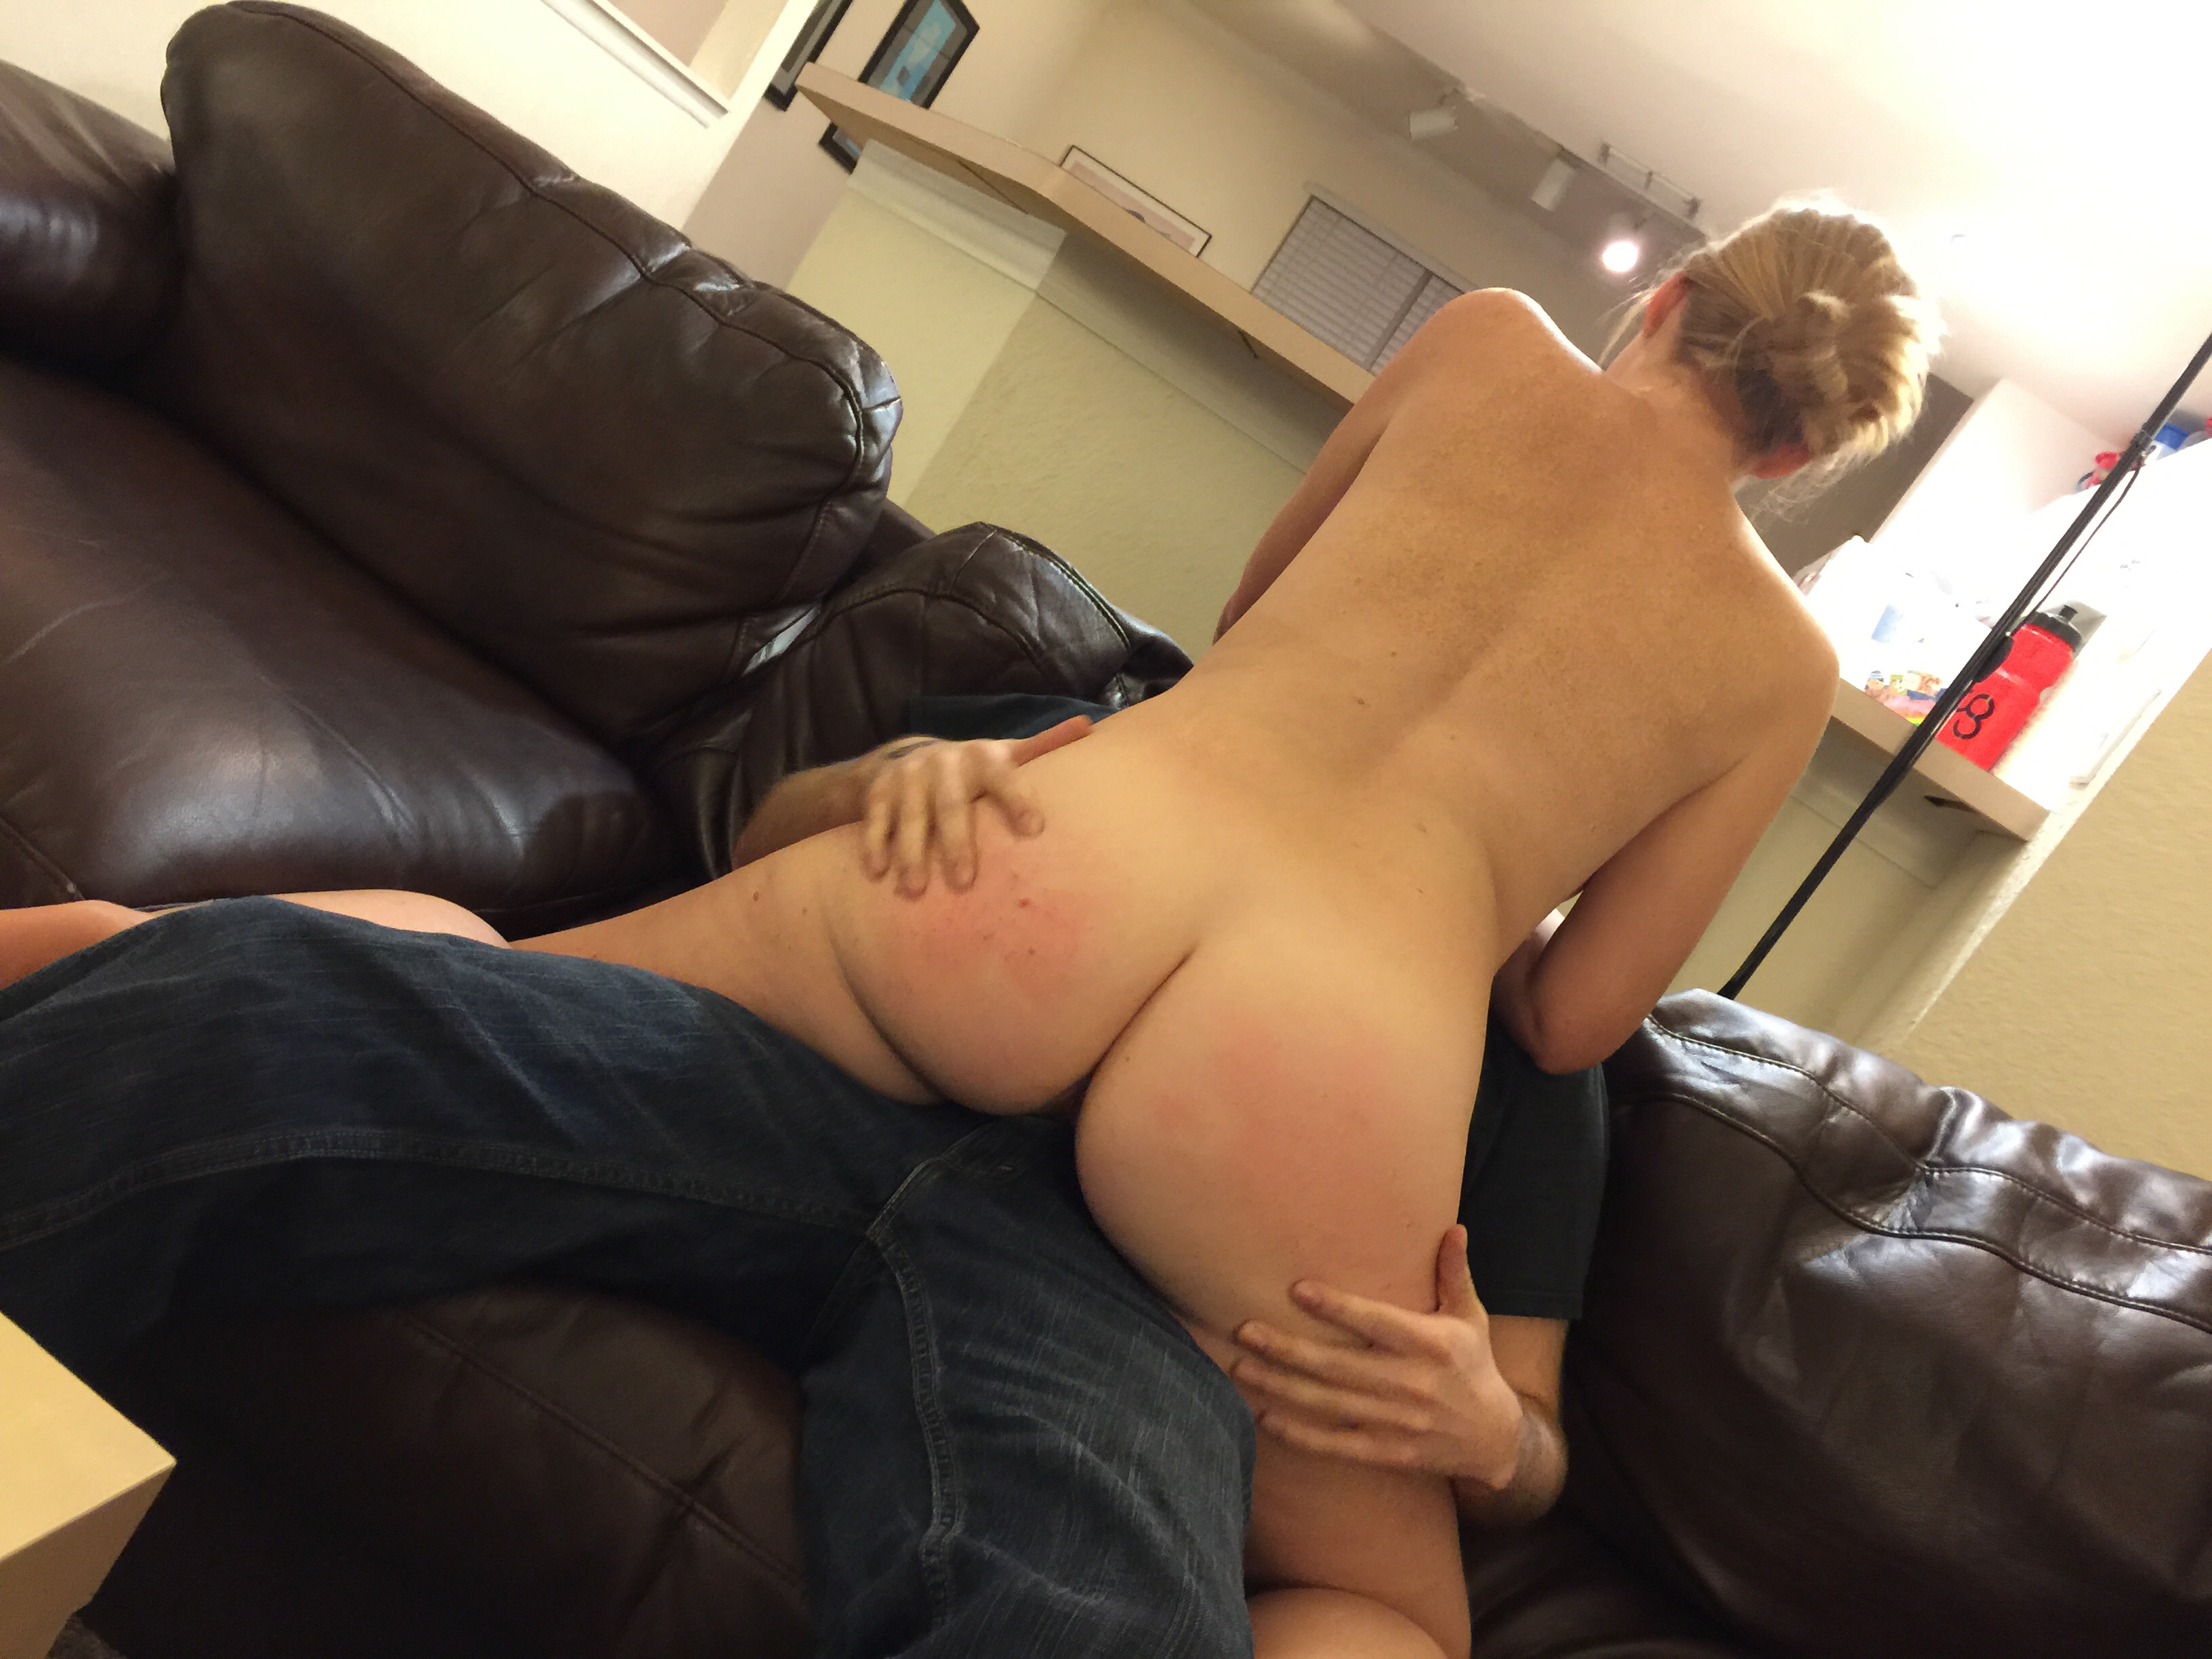 image My hubby left me fuck his friend and filmed it